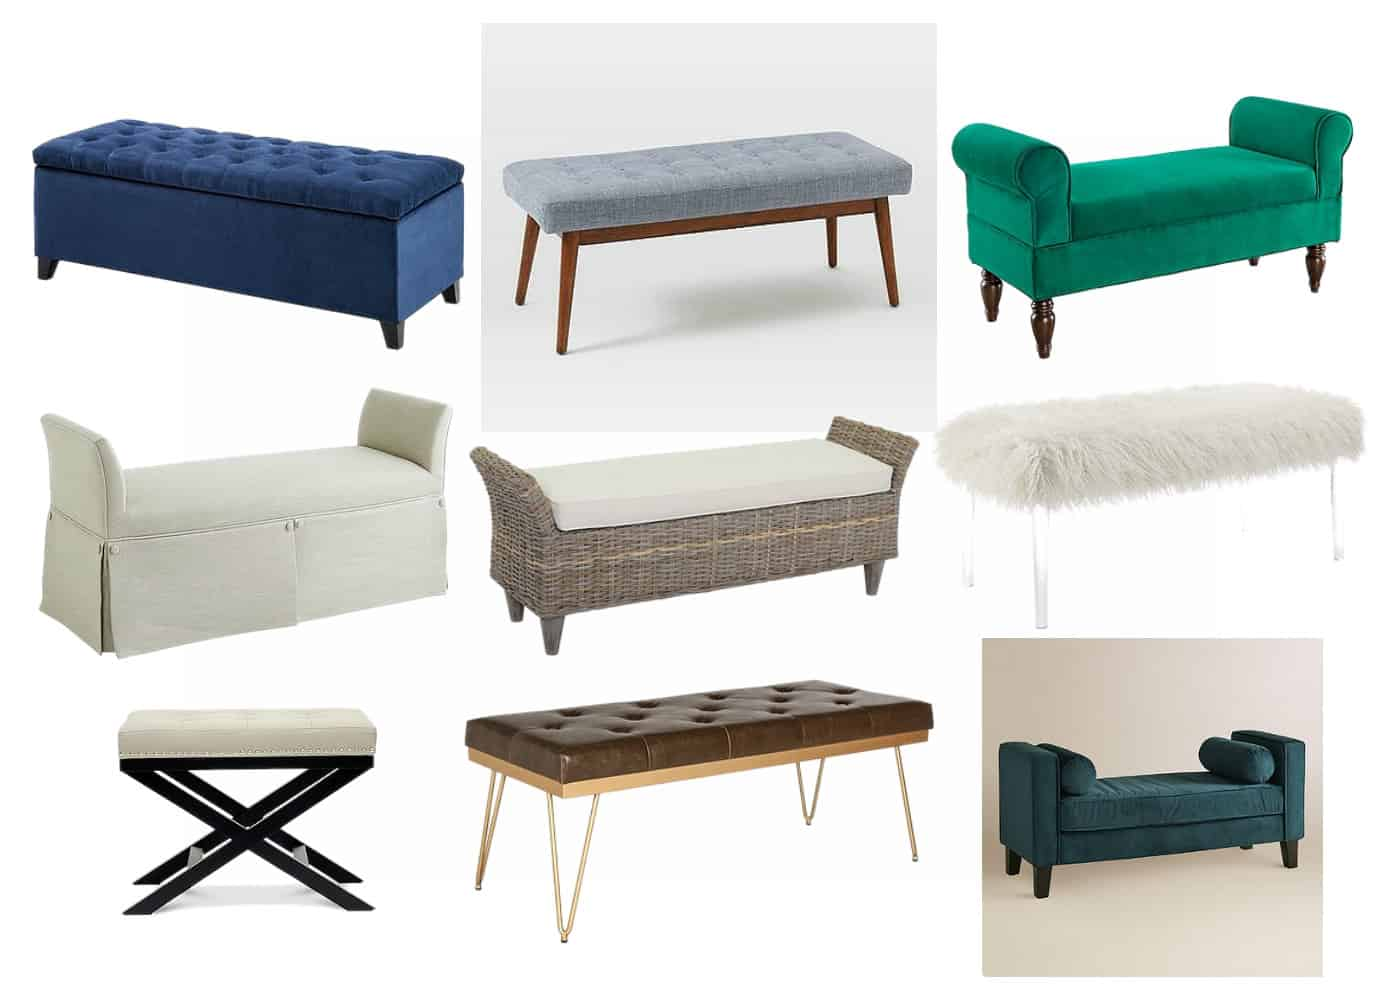 how to choose the best bedroom bench - simple stylings